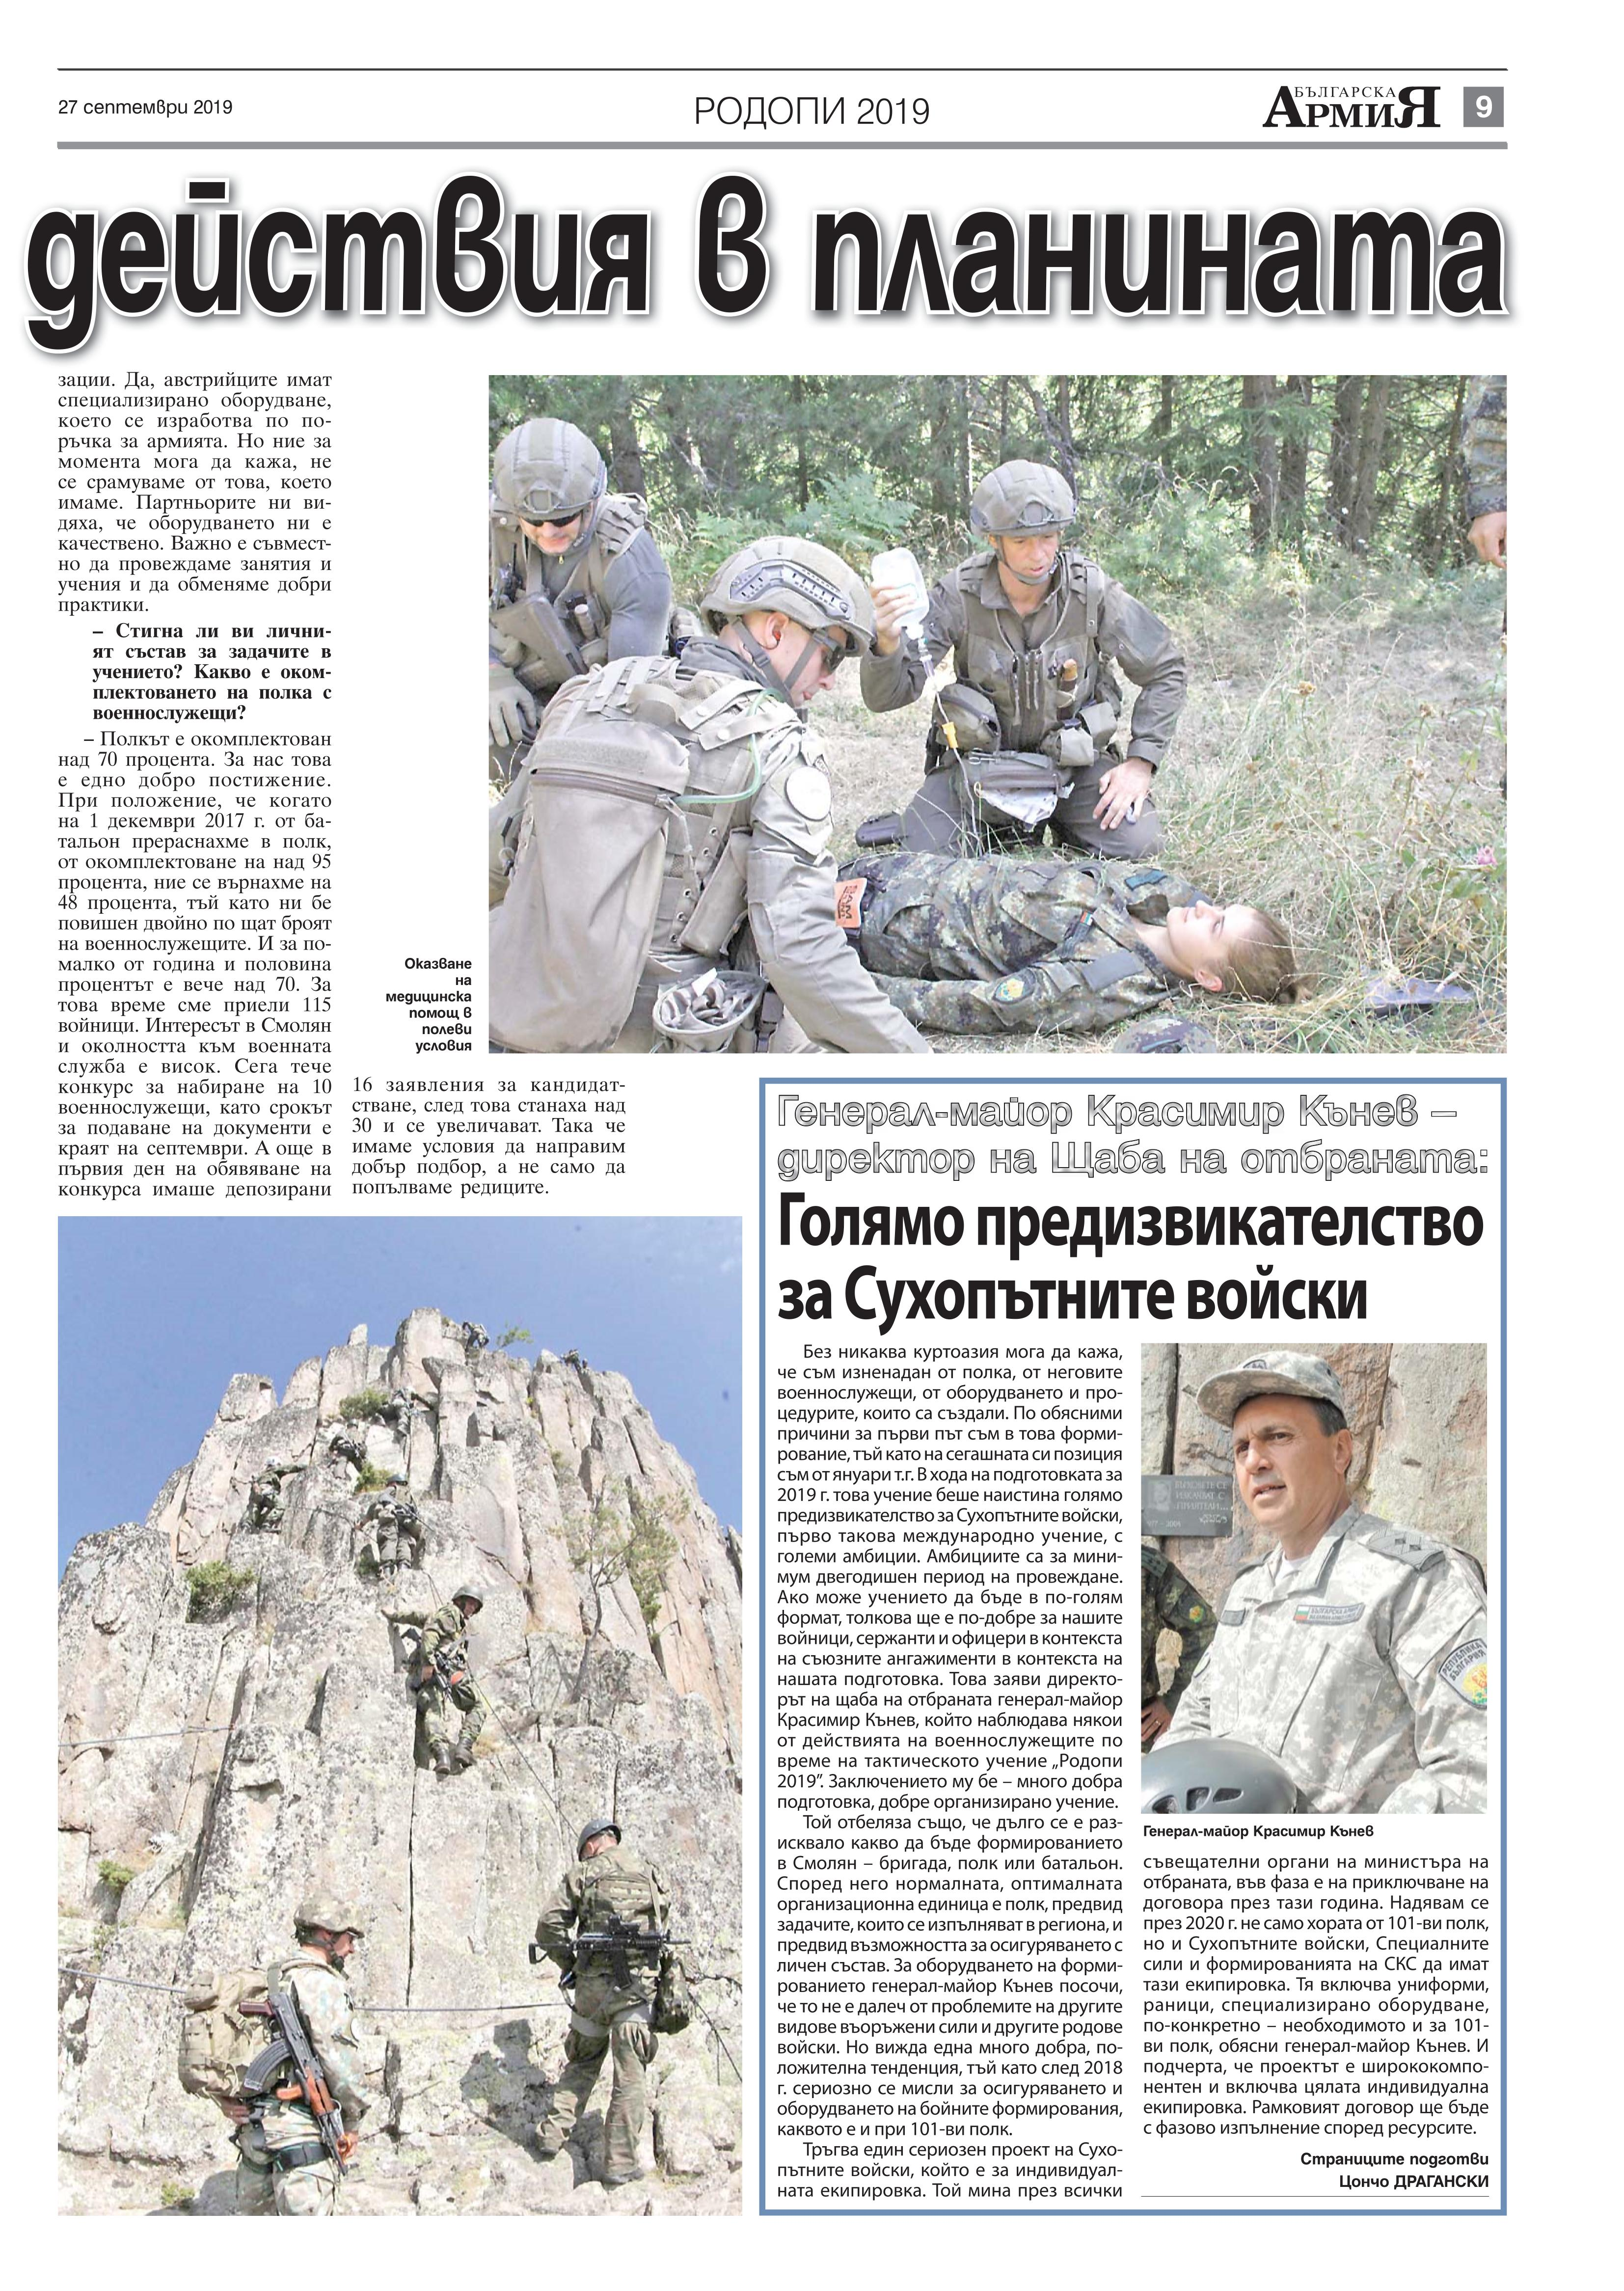 https://armymedia.bg/wp-content/uploads/2015/06/09.page1_-108.jpg